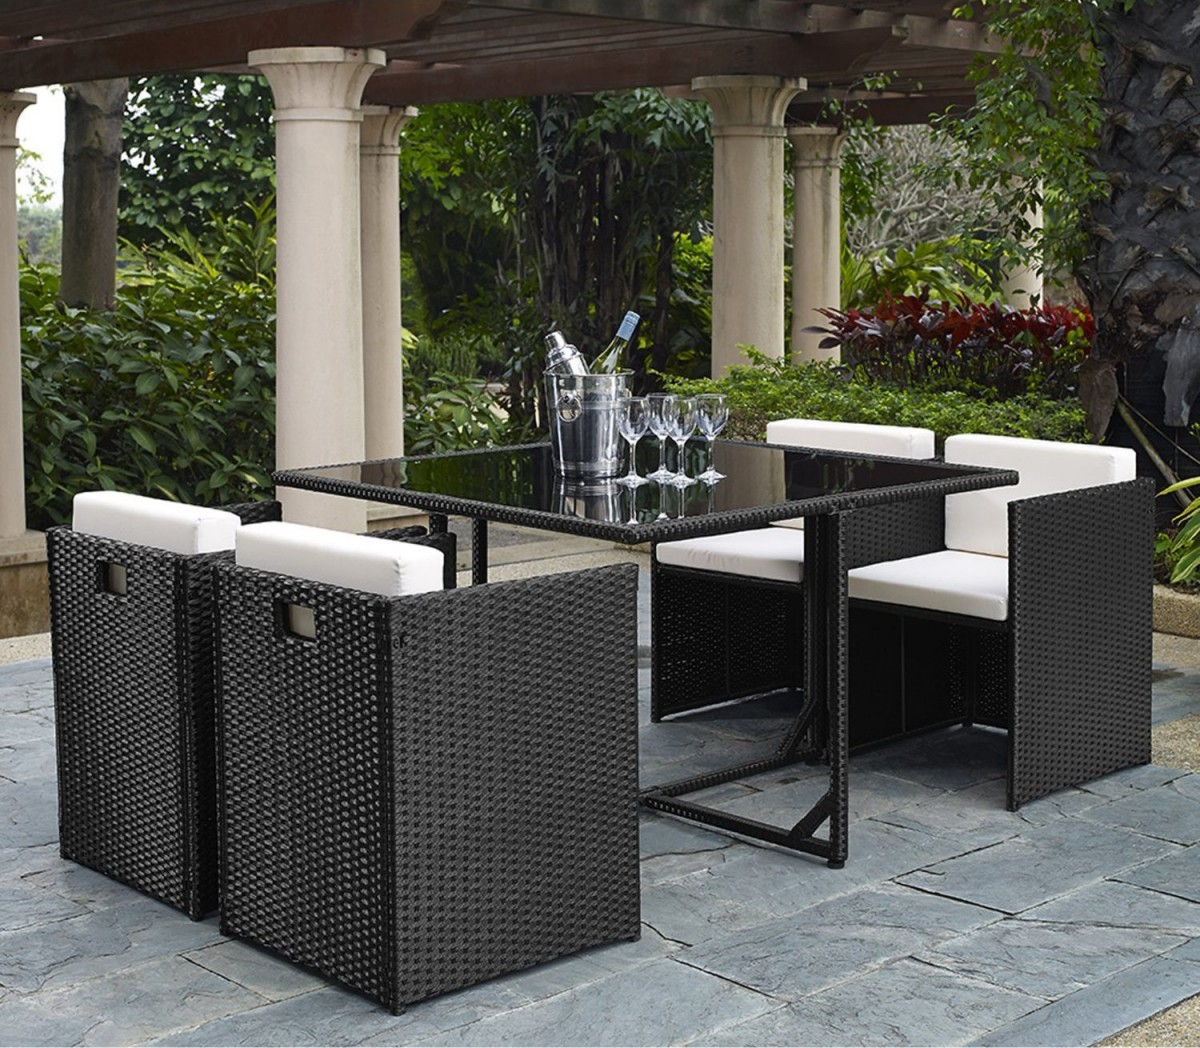 5 piece rattan cube garden furniture set w stowaway chairs for Garden patio table